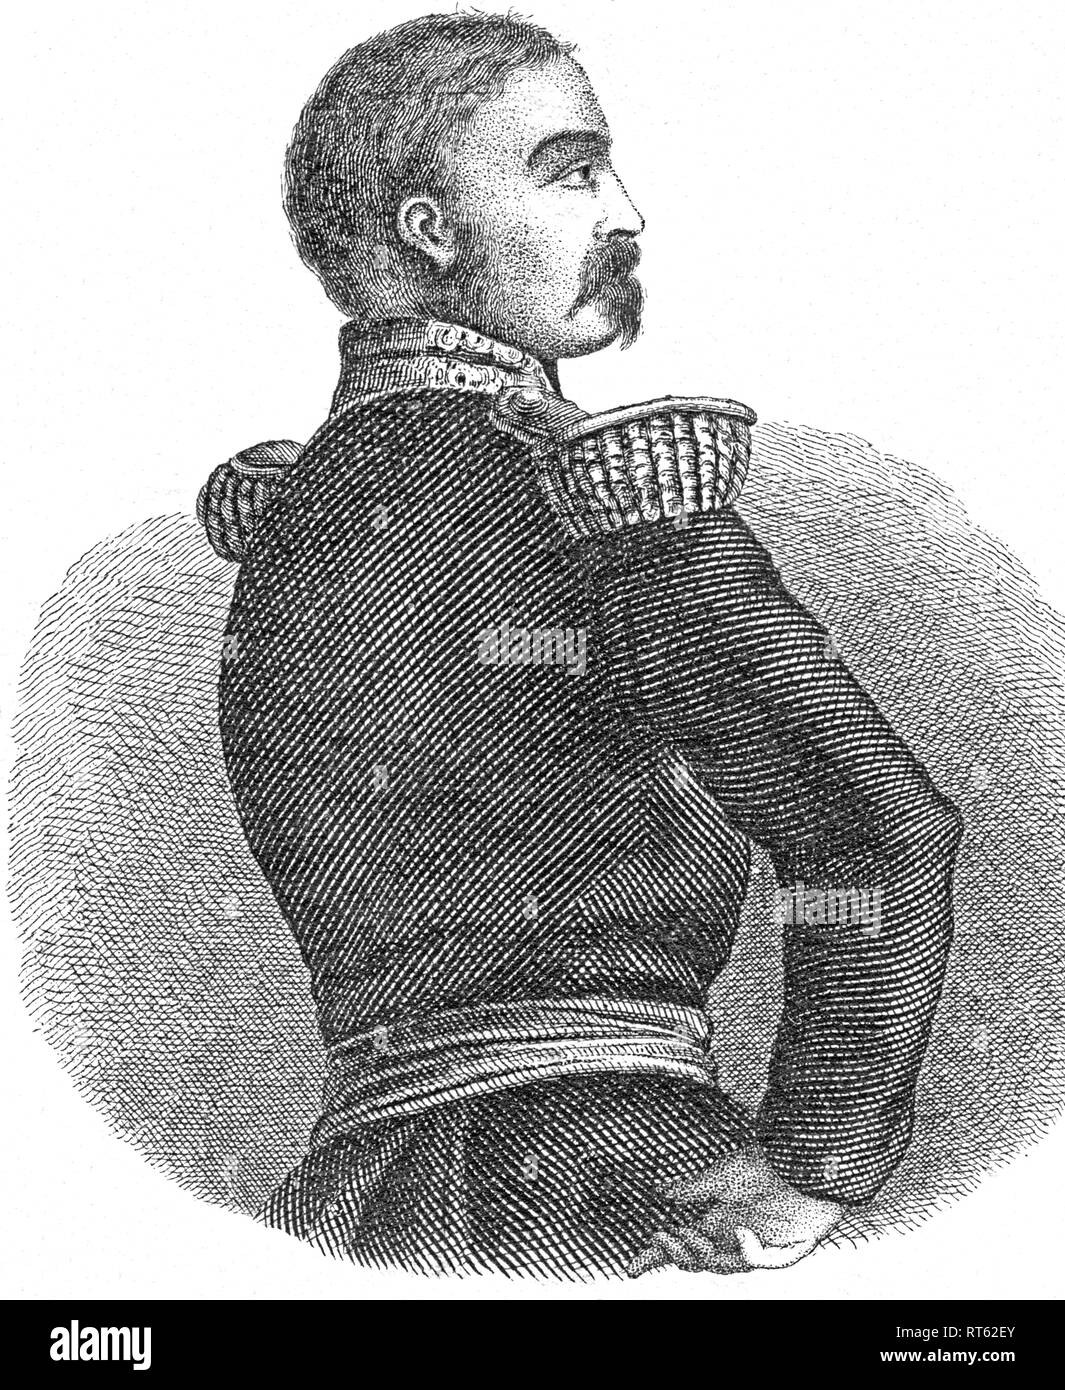 Aimable-Jean-Jacques Pélissier, french officer, 1855 general of the first corps of the oriental army in the Crimean War, in the same year Marshal of France, 1856 Duke of Malakow, lithography from: 'National-Kalender für alle Kronländer der kaiserl. königl. Monarchie auf das Schaltjahr 1856 (National calender for all crown lands of the imperial monarchy of Austria), lithographer: W. Klimt, published by Carl Wilhelm Medow, Leitmeritz / Prague., Additional-Rights-Clearance-Info-Not-Available - Stock Image